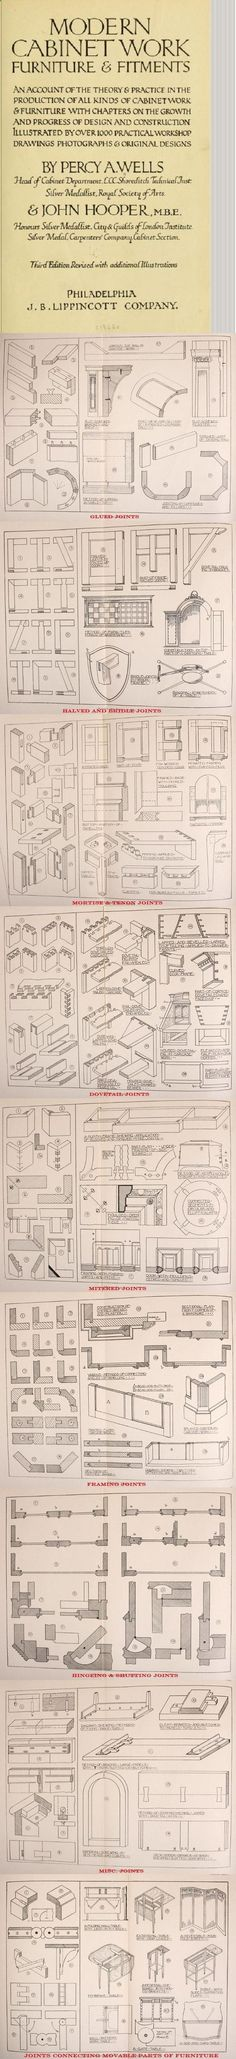 Joints from a 1922 cabinet makers reference book.